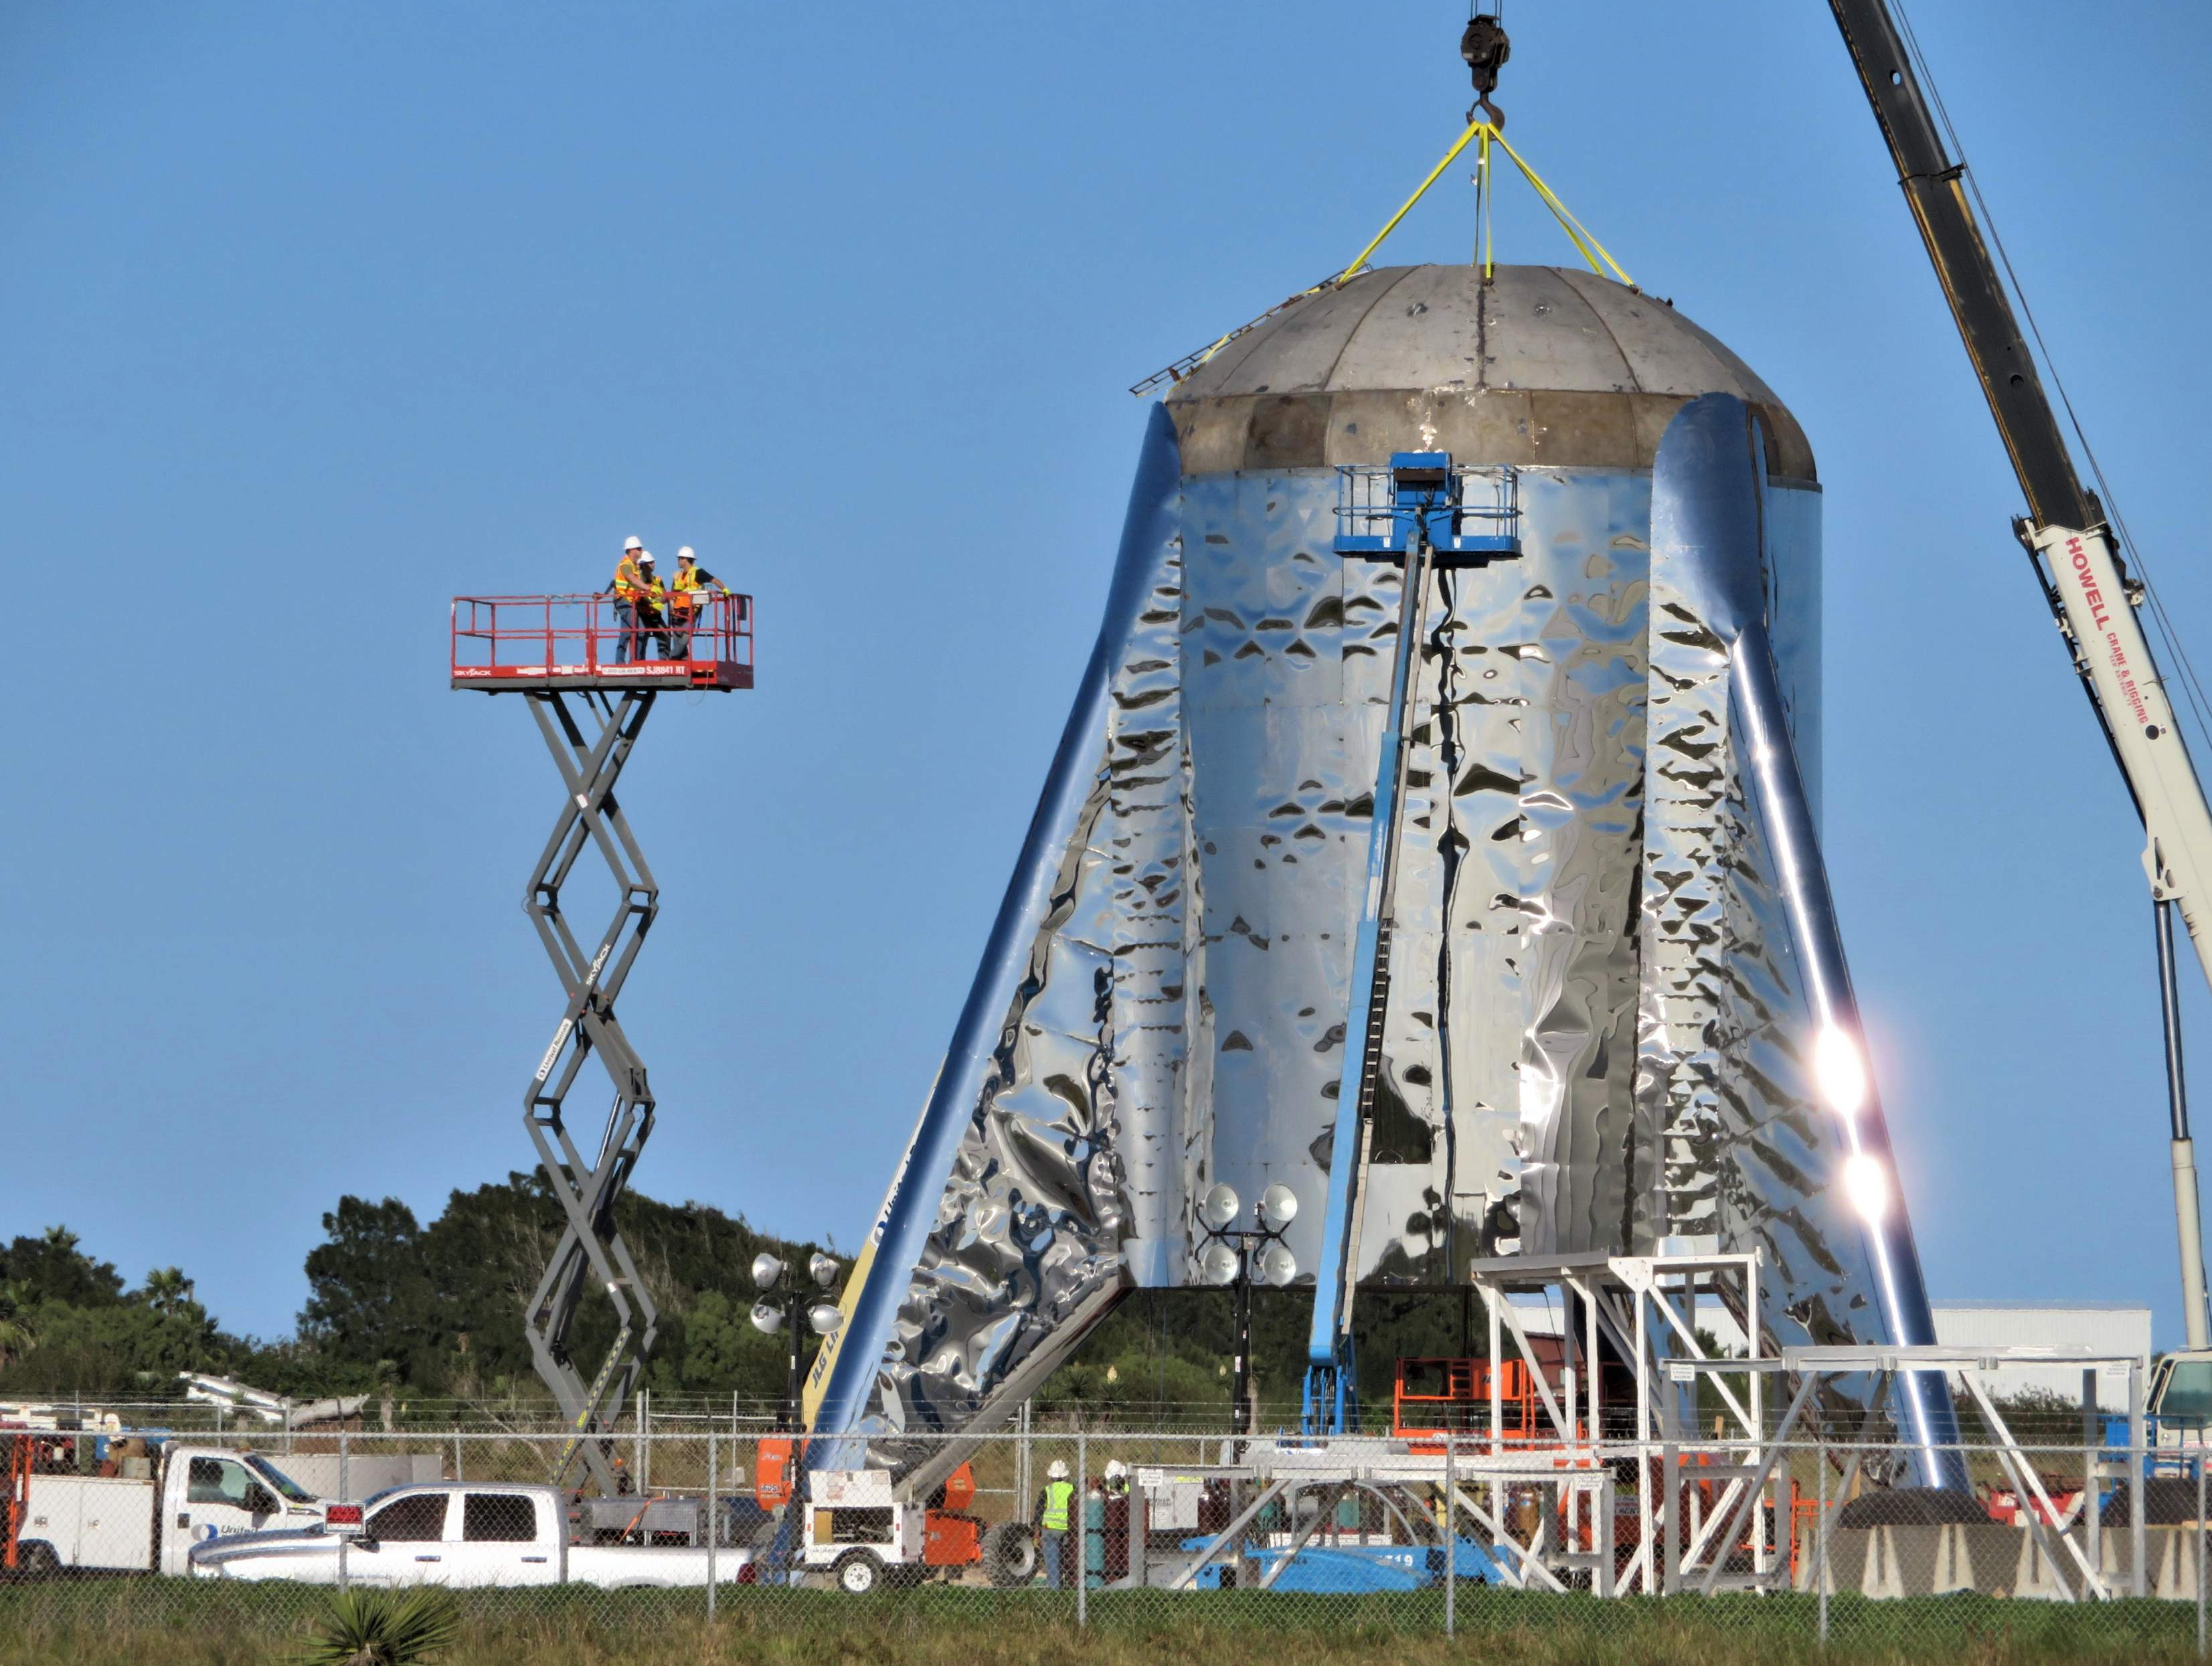 Boca Chica Starship final dome install 012419 (NASASpaceflight – bocachicagal) 3 (c)